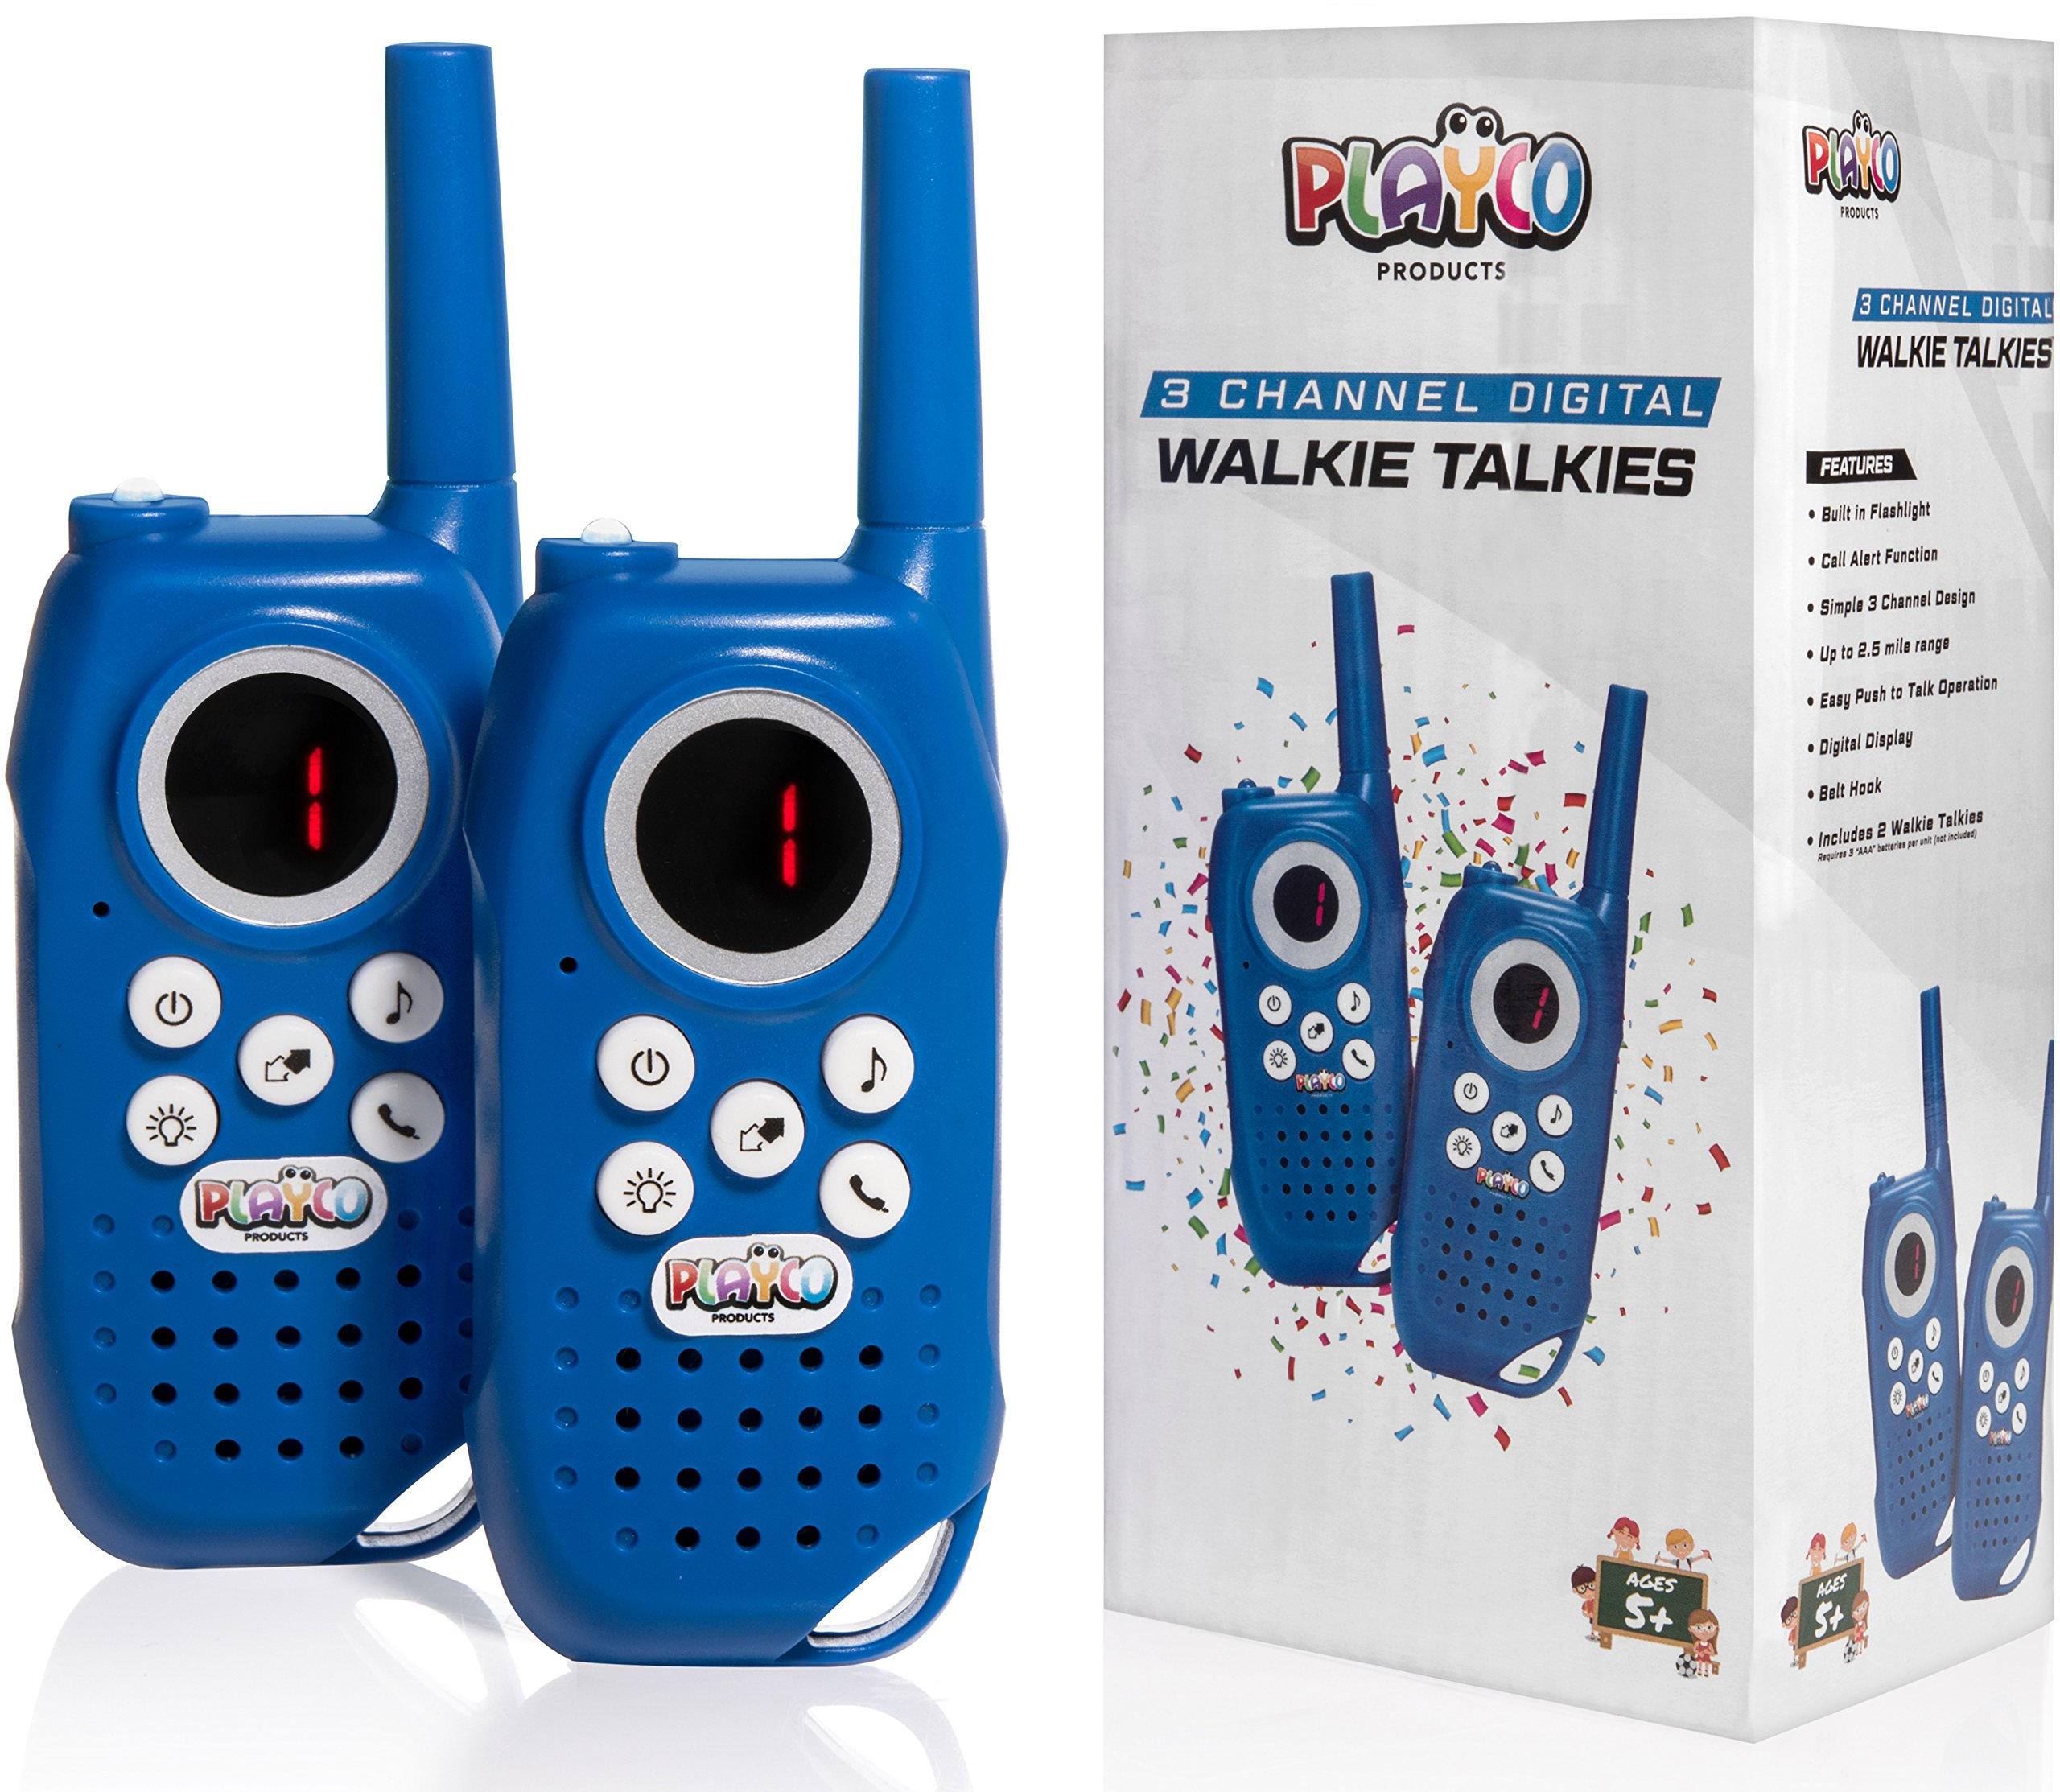 Playco Products Walkie Talkies for Kids - Fun Packaging Makes for an Awesome Gift for Boys and Girls - Simple 3 Channel Set Includes Flashlight and Belt Clip - Keep Your Children Busy for Hours